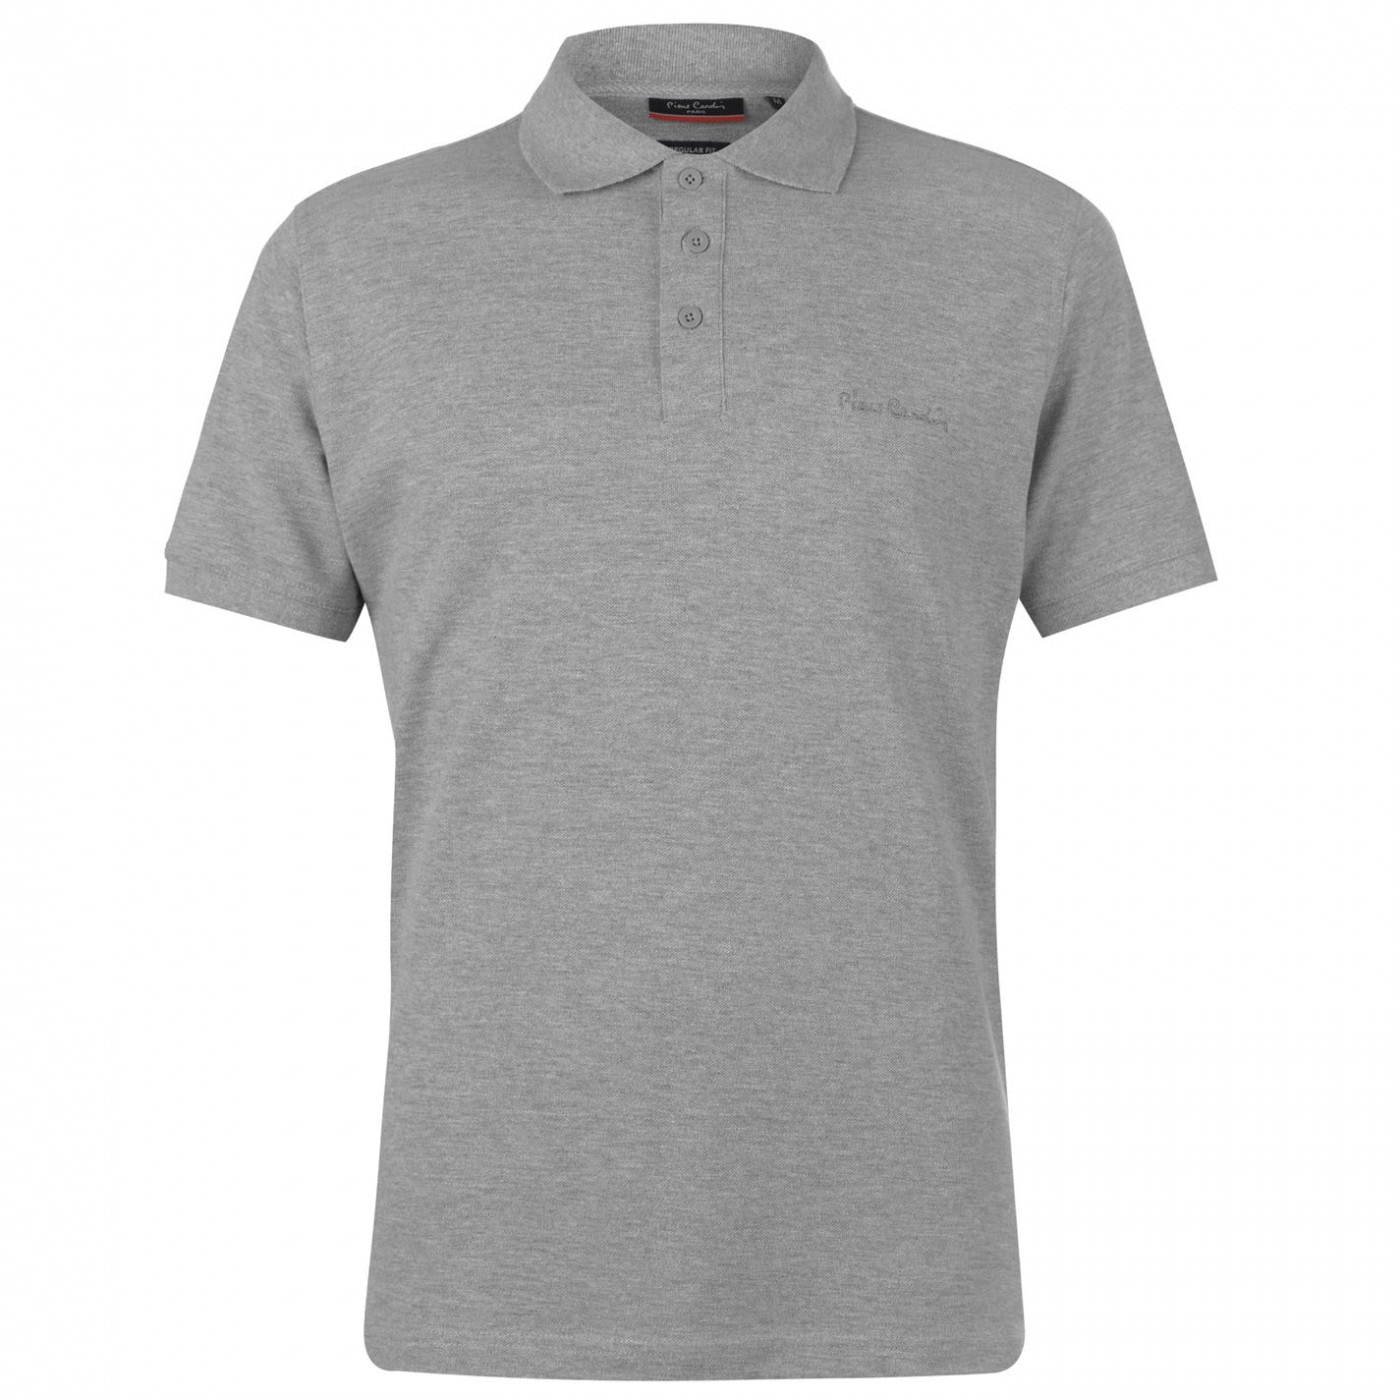 Men's polo shirt Pierre Cardin Plain